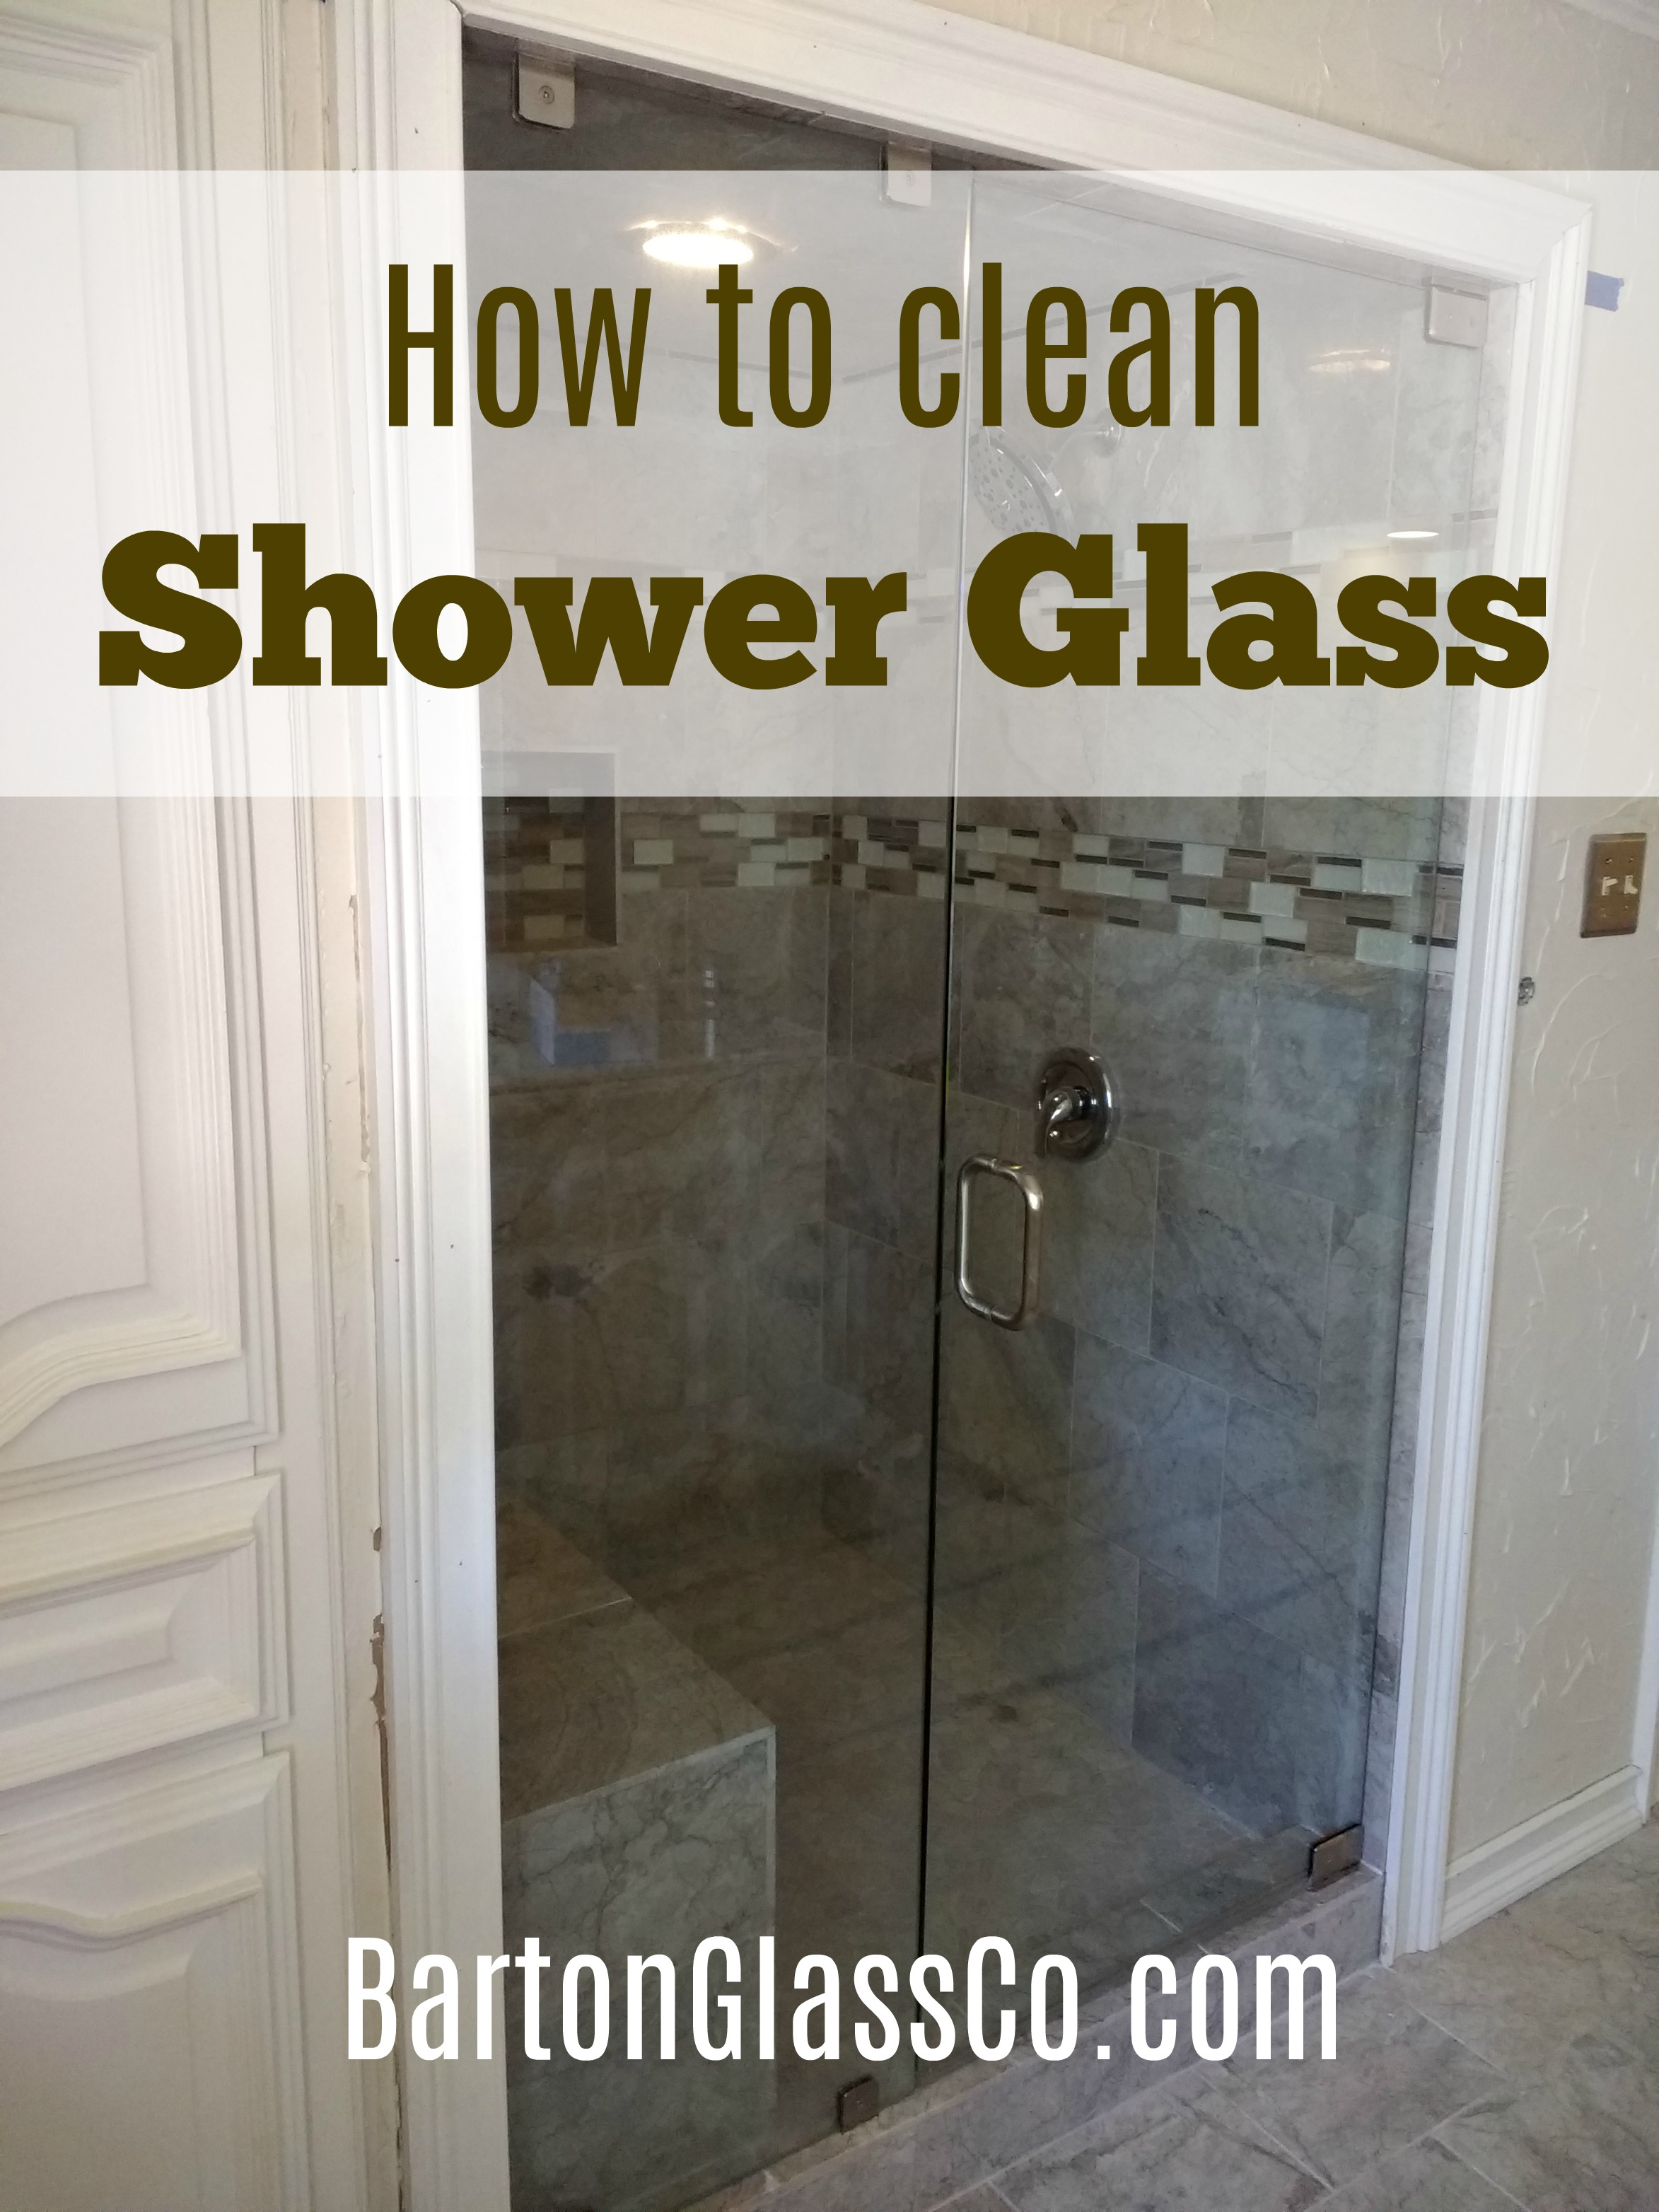 Cleaning Shower Glass – The Do's and Dont's